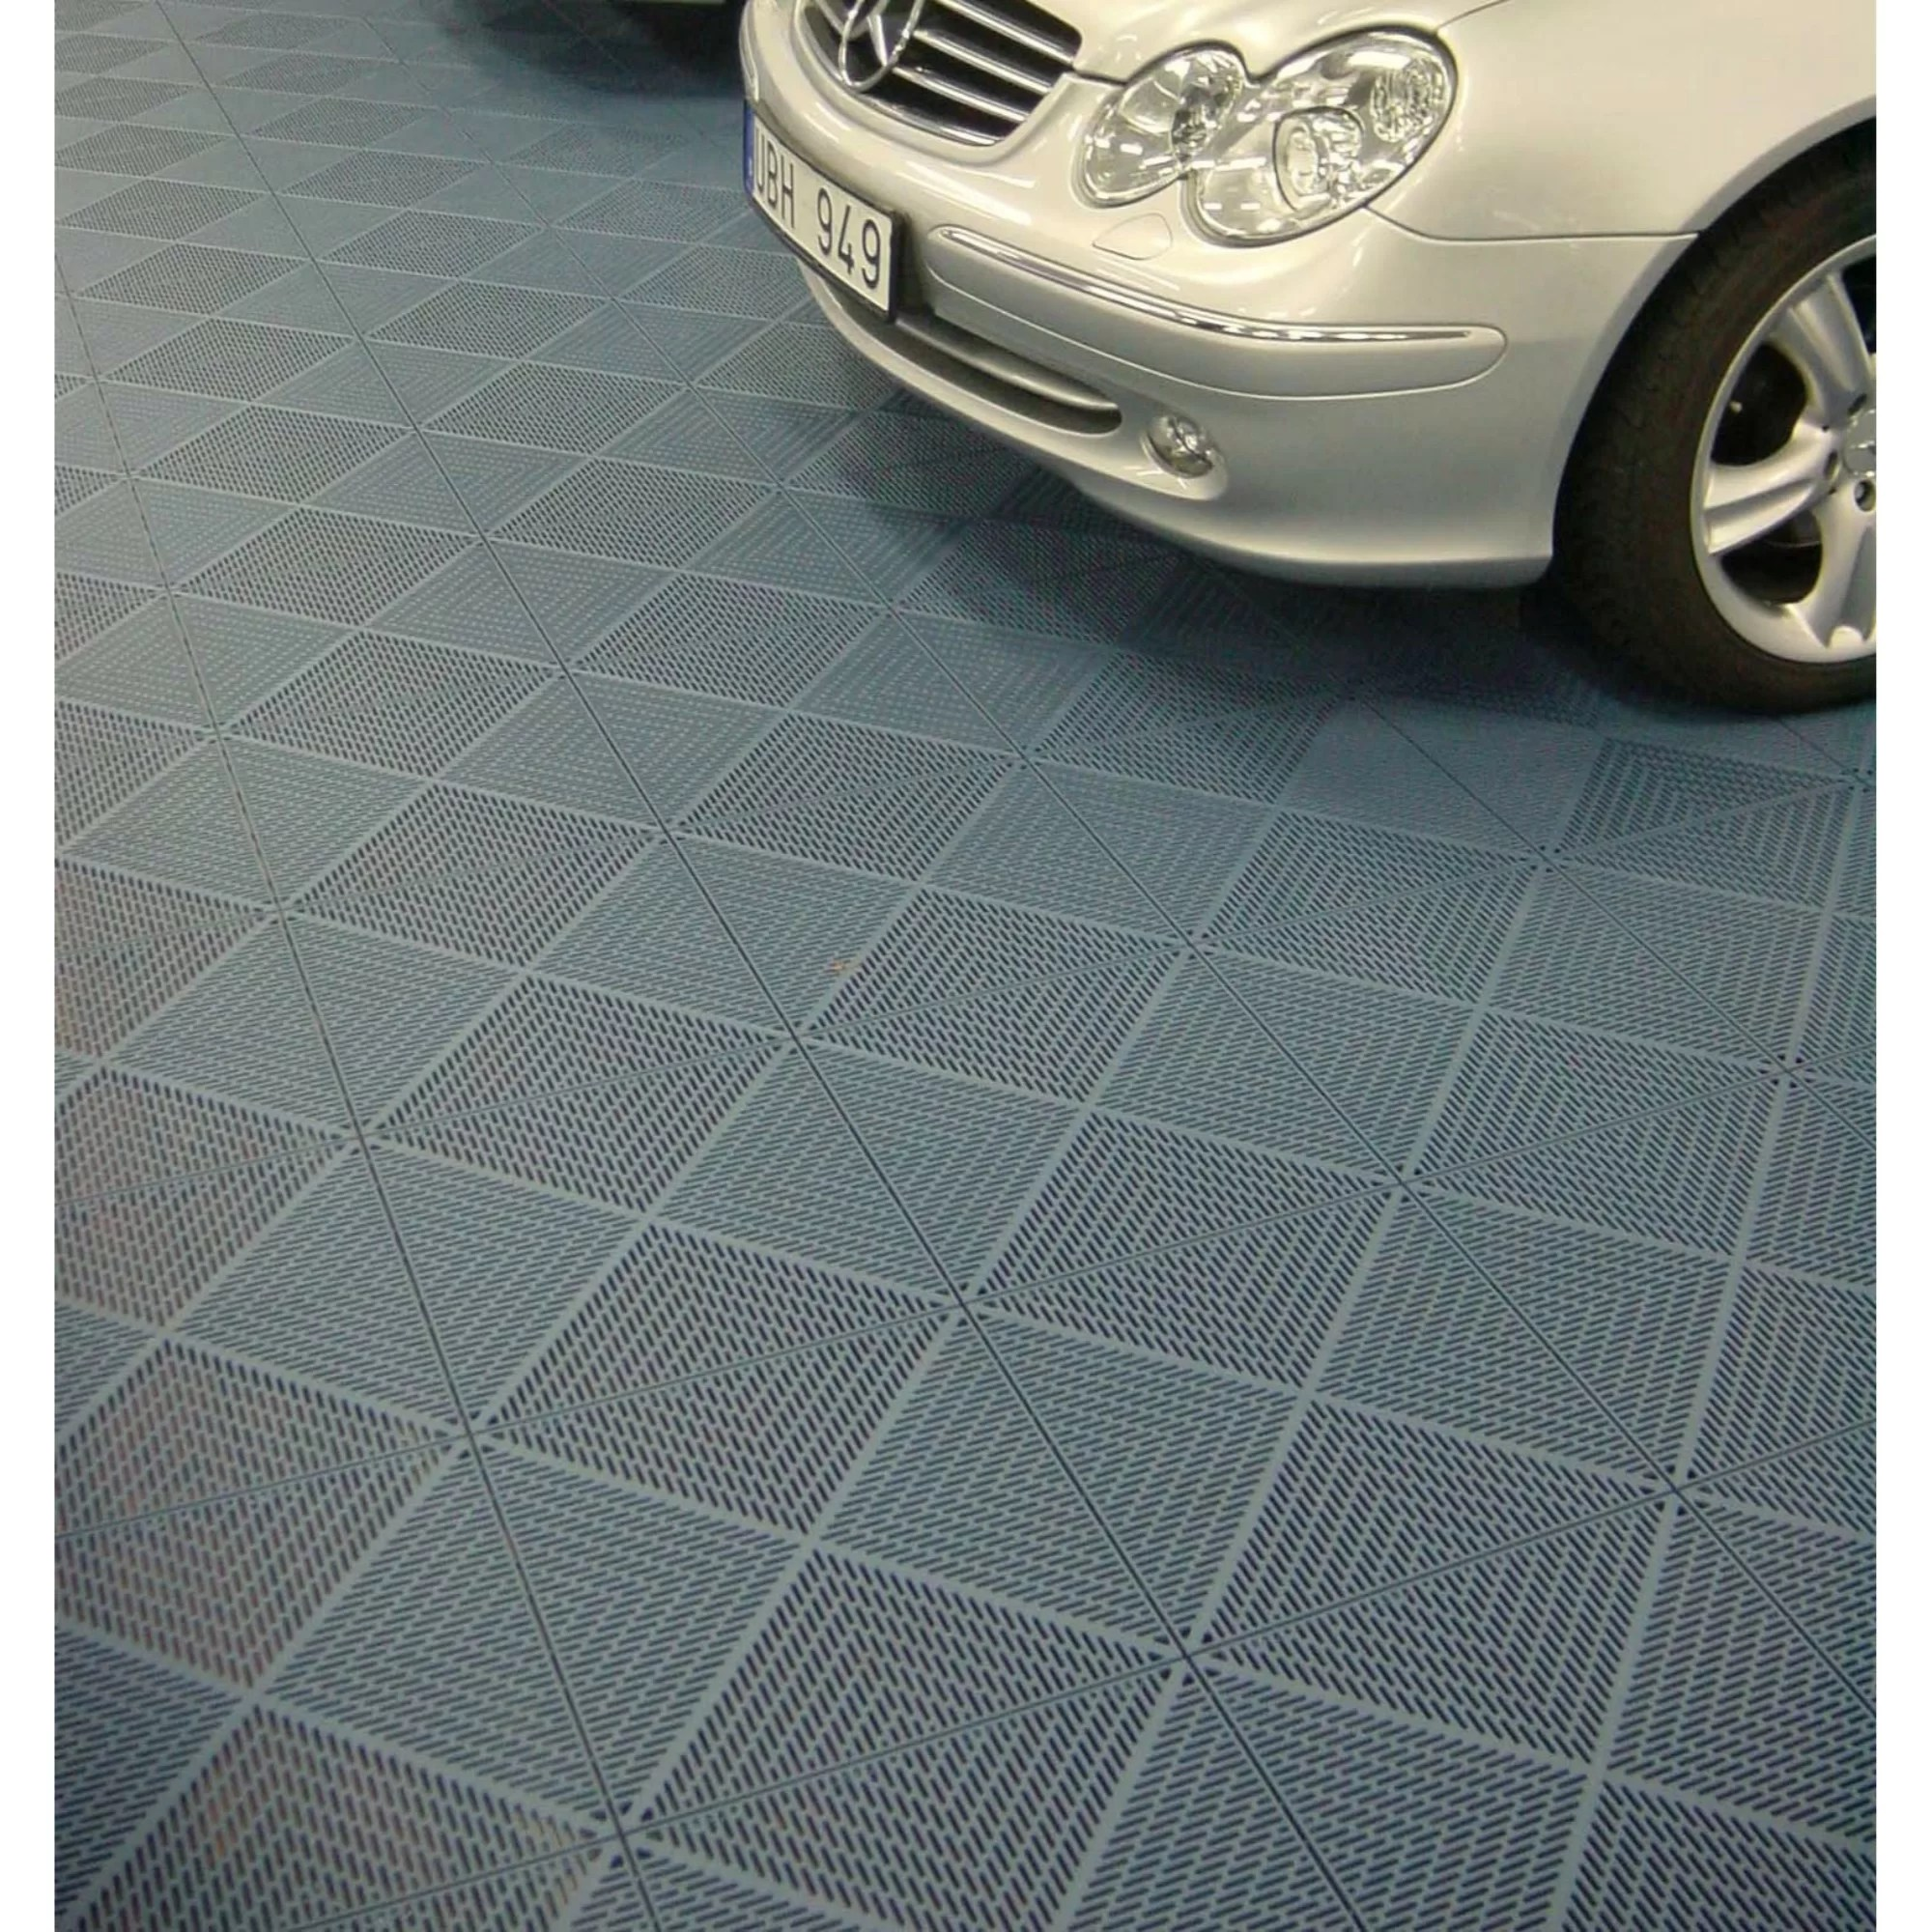 Garage Floor Tiles That Drain Bergo Unique 14 9